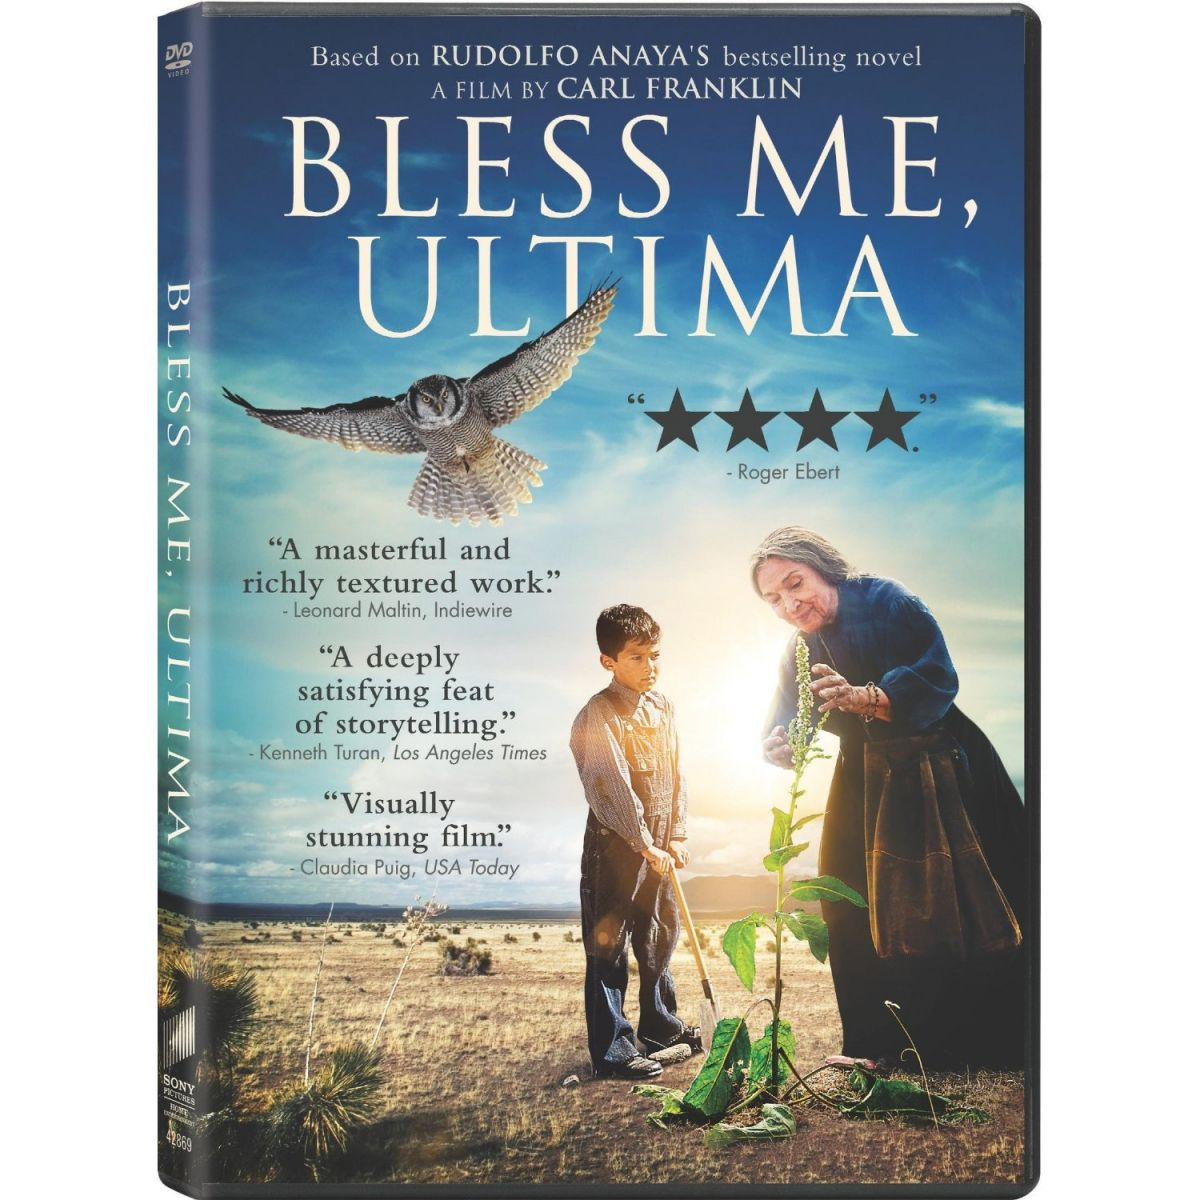 symbolism in bless me ultima by rudolfo anaya Free study guide: bless me, ultima by rudolfo anaya - free booknotes previous page | table of contents ultima is a spanish word meaning ultimate or the end.